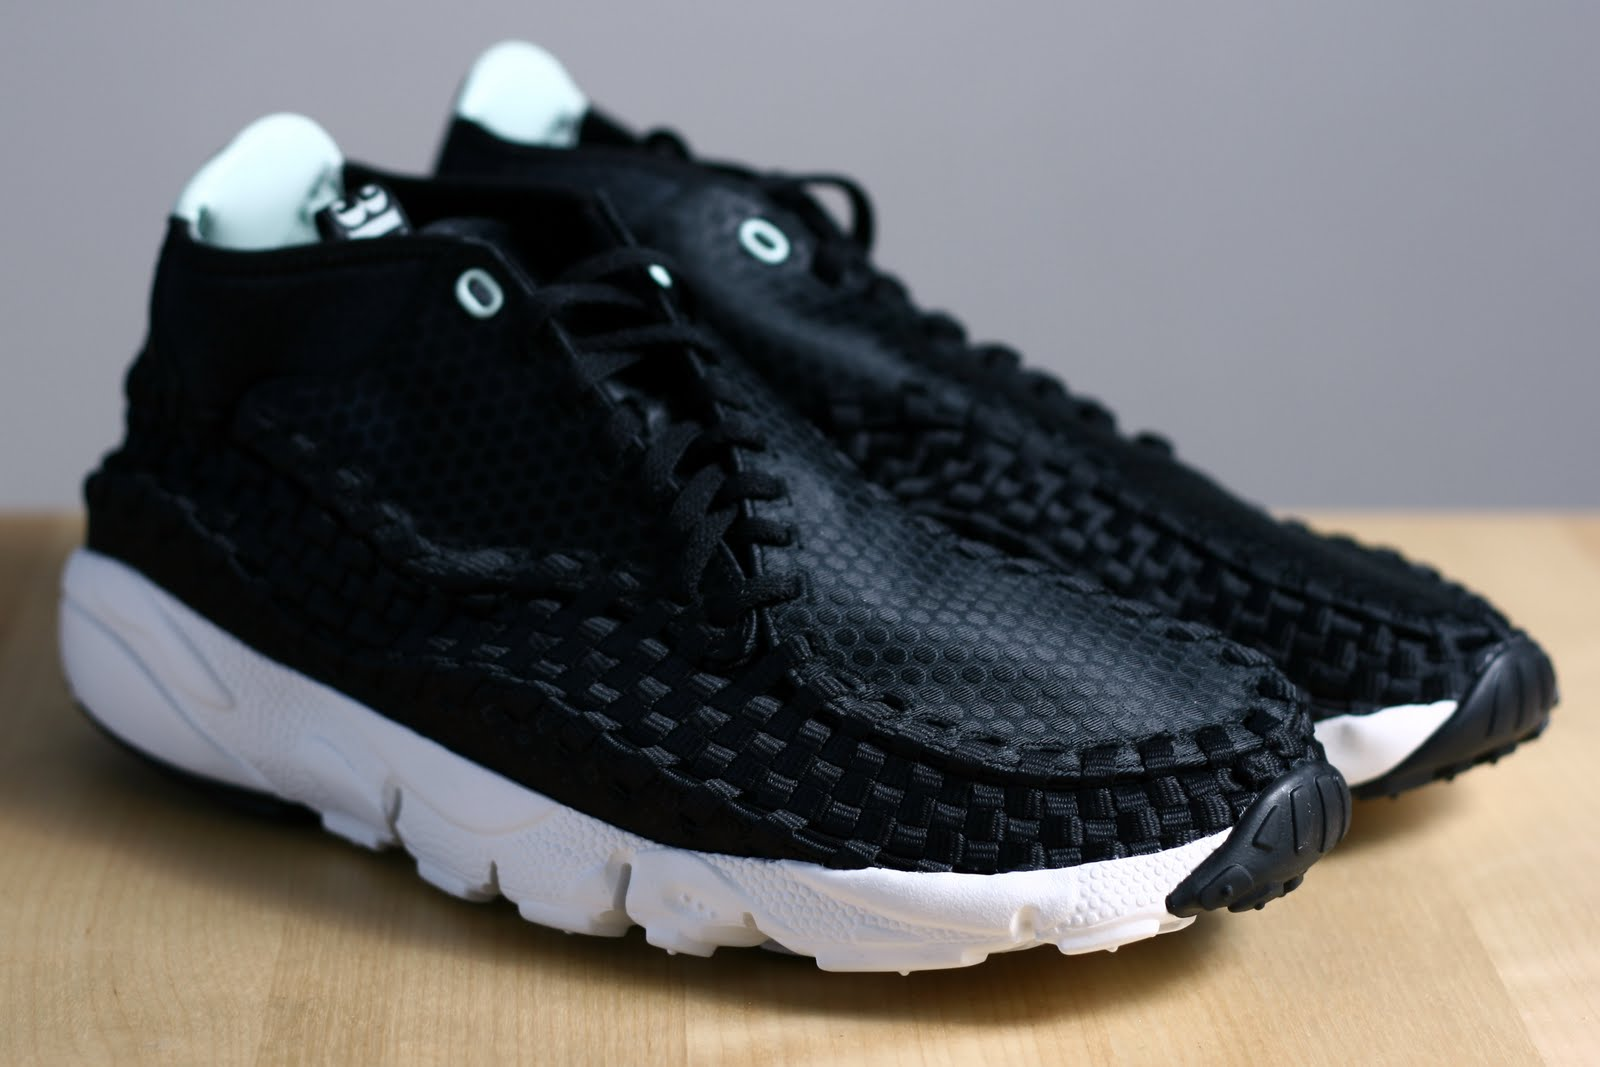 845be76be7 Ouwe Paparazzi: Nike Air Footscape Woven Chukka Free Motion '3HC ...